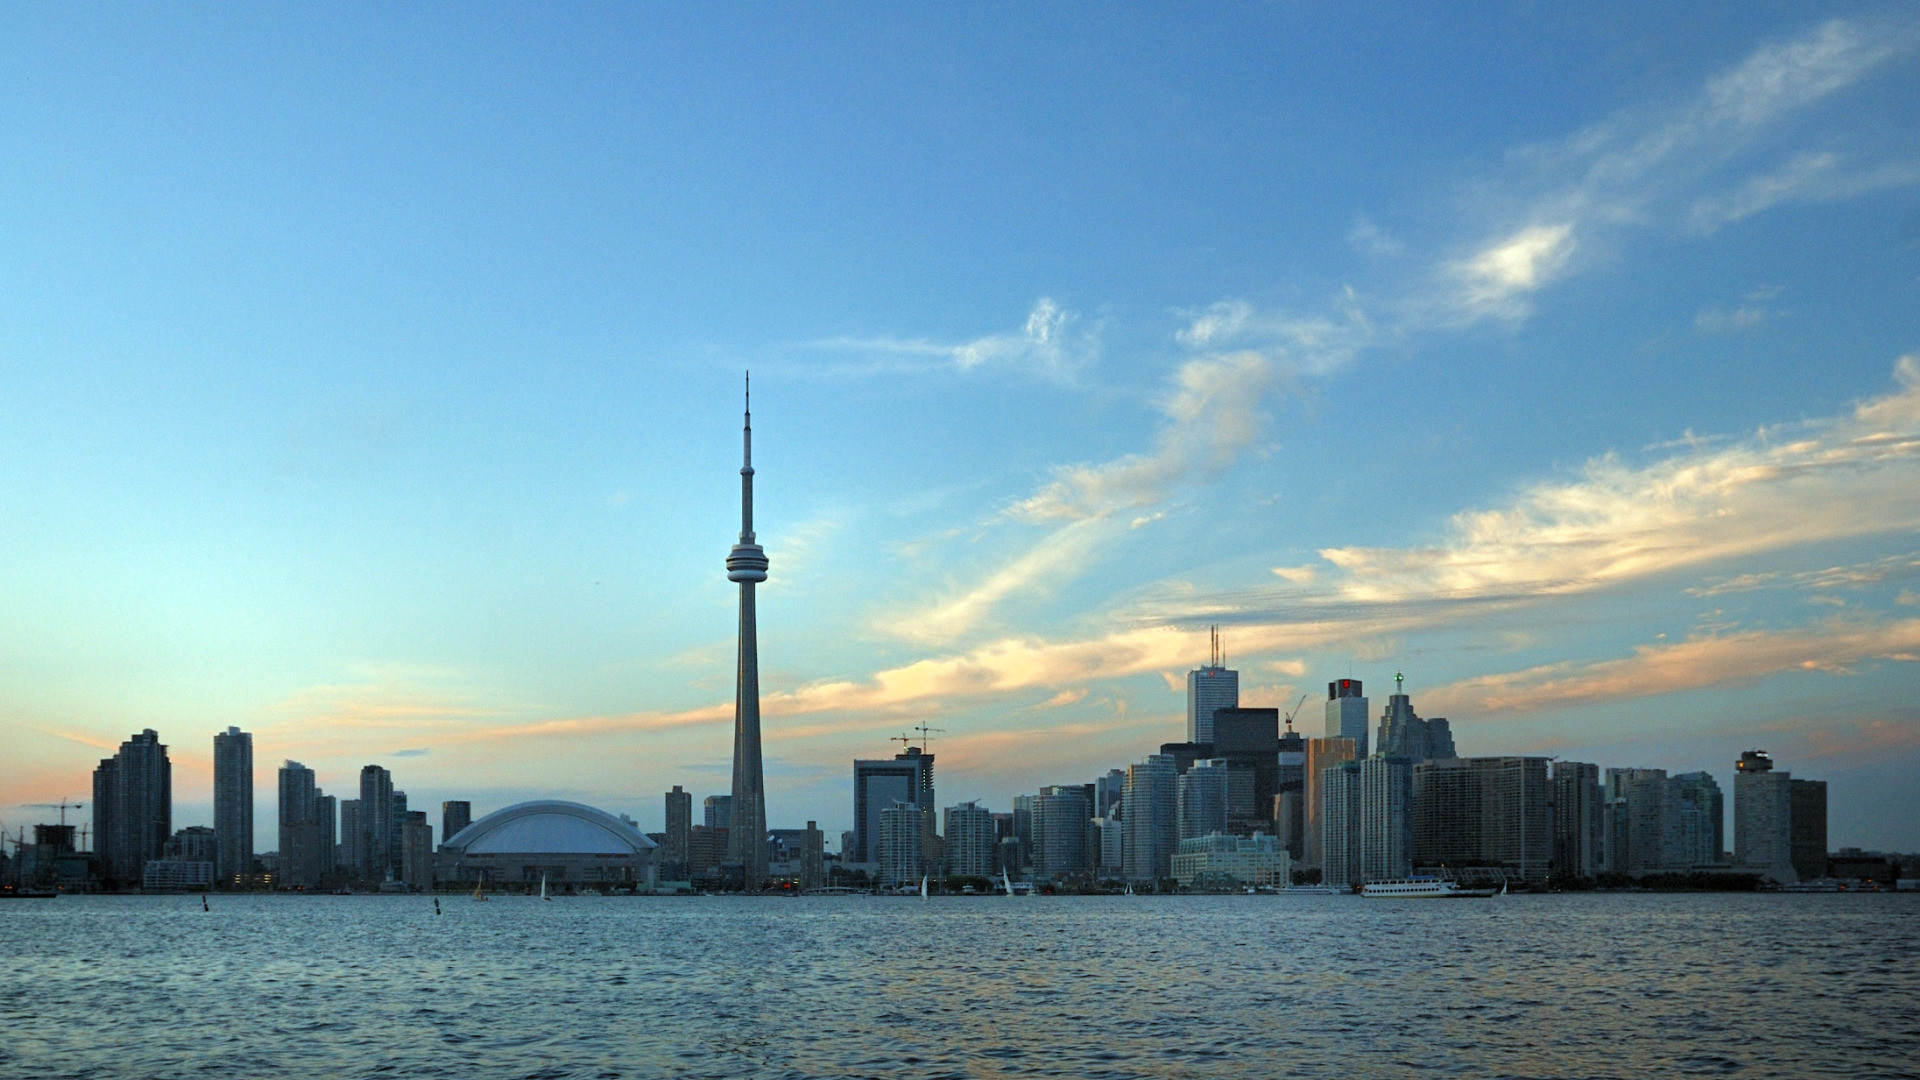 1920x1080 Toronto Toronto, Canada Pinterest 1920×1080 Toronto Wallpapers (41  Wallpapers) | Adorable